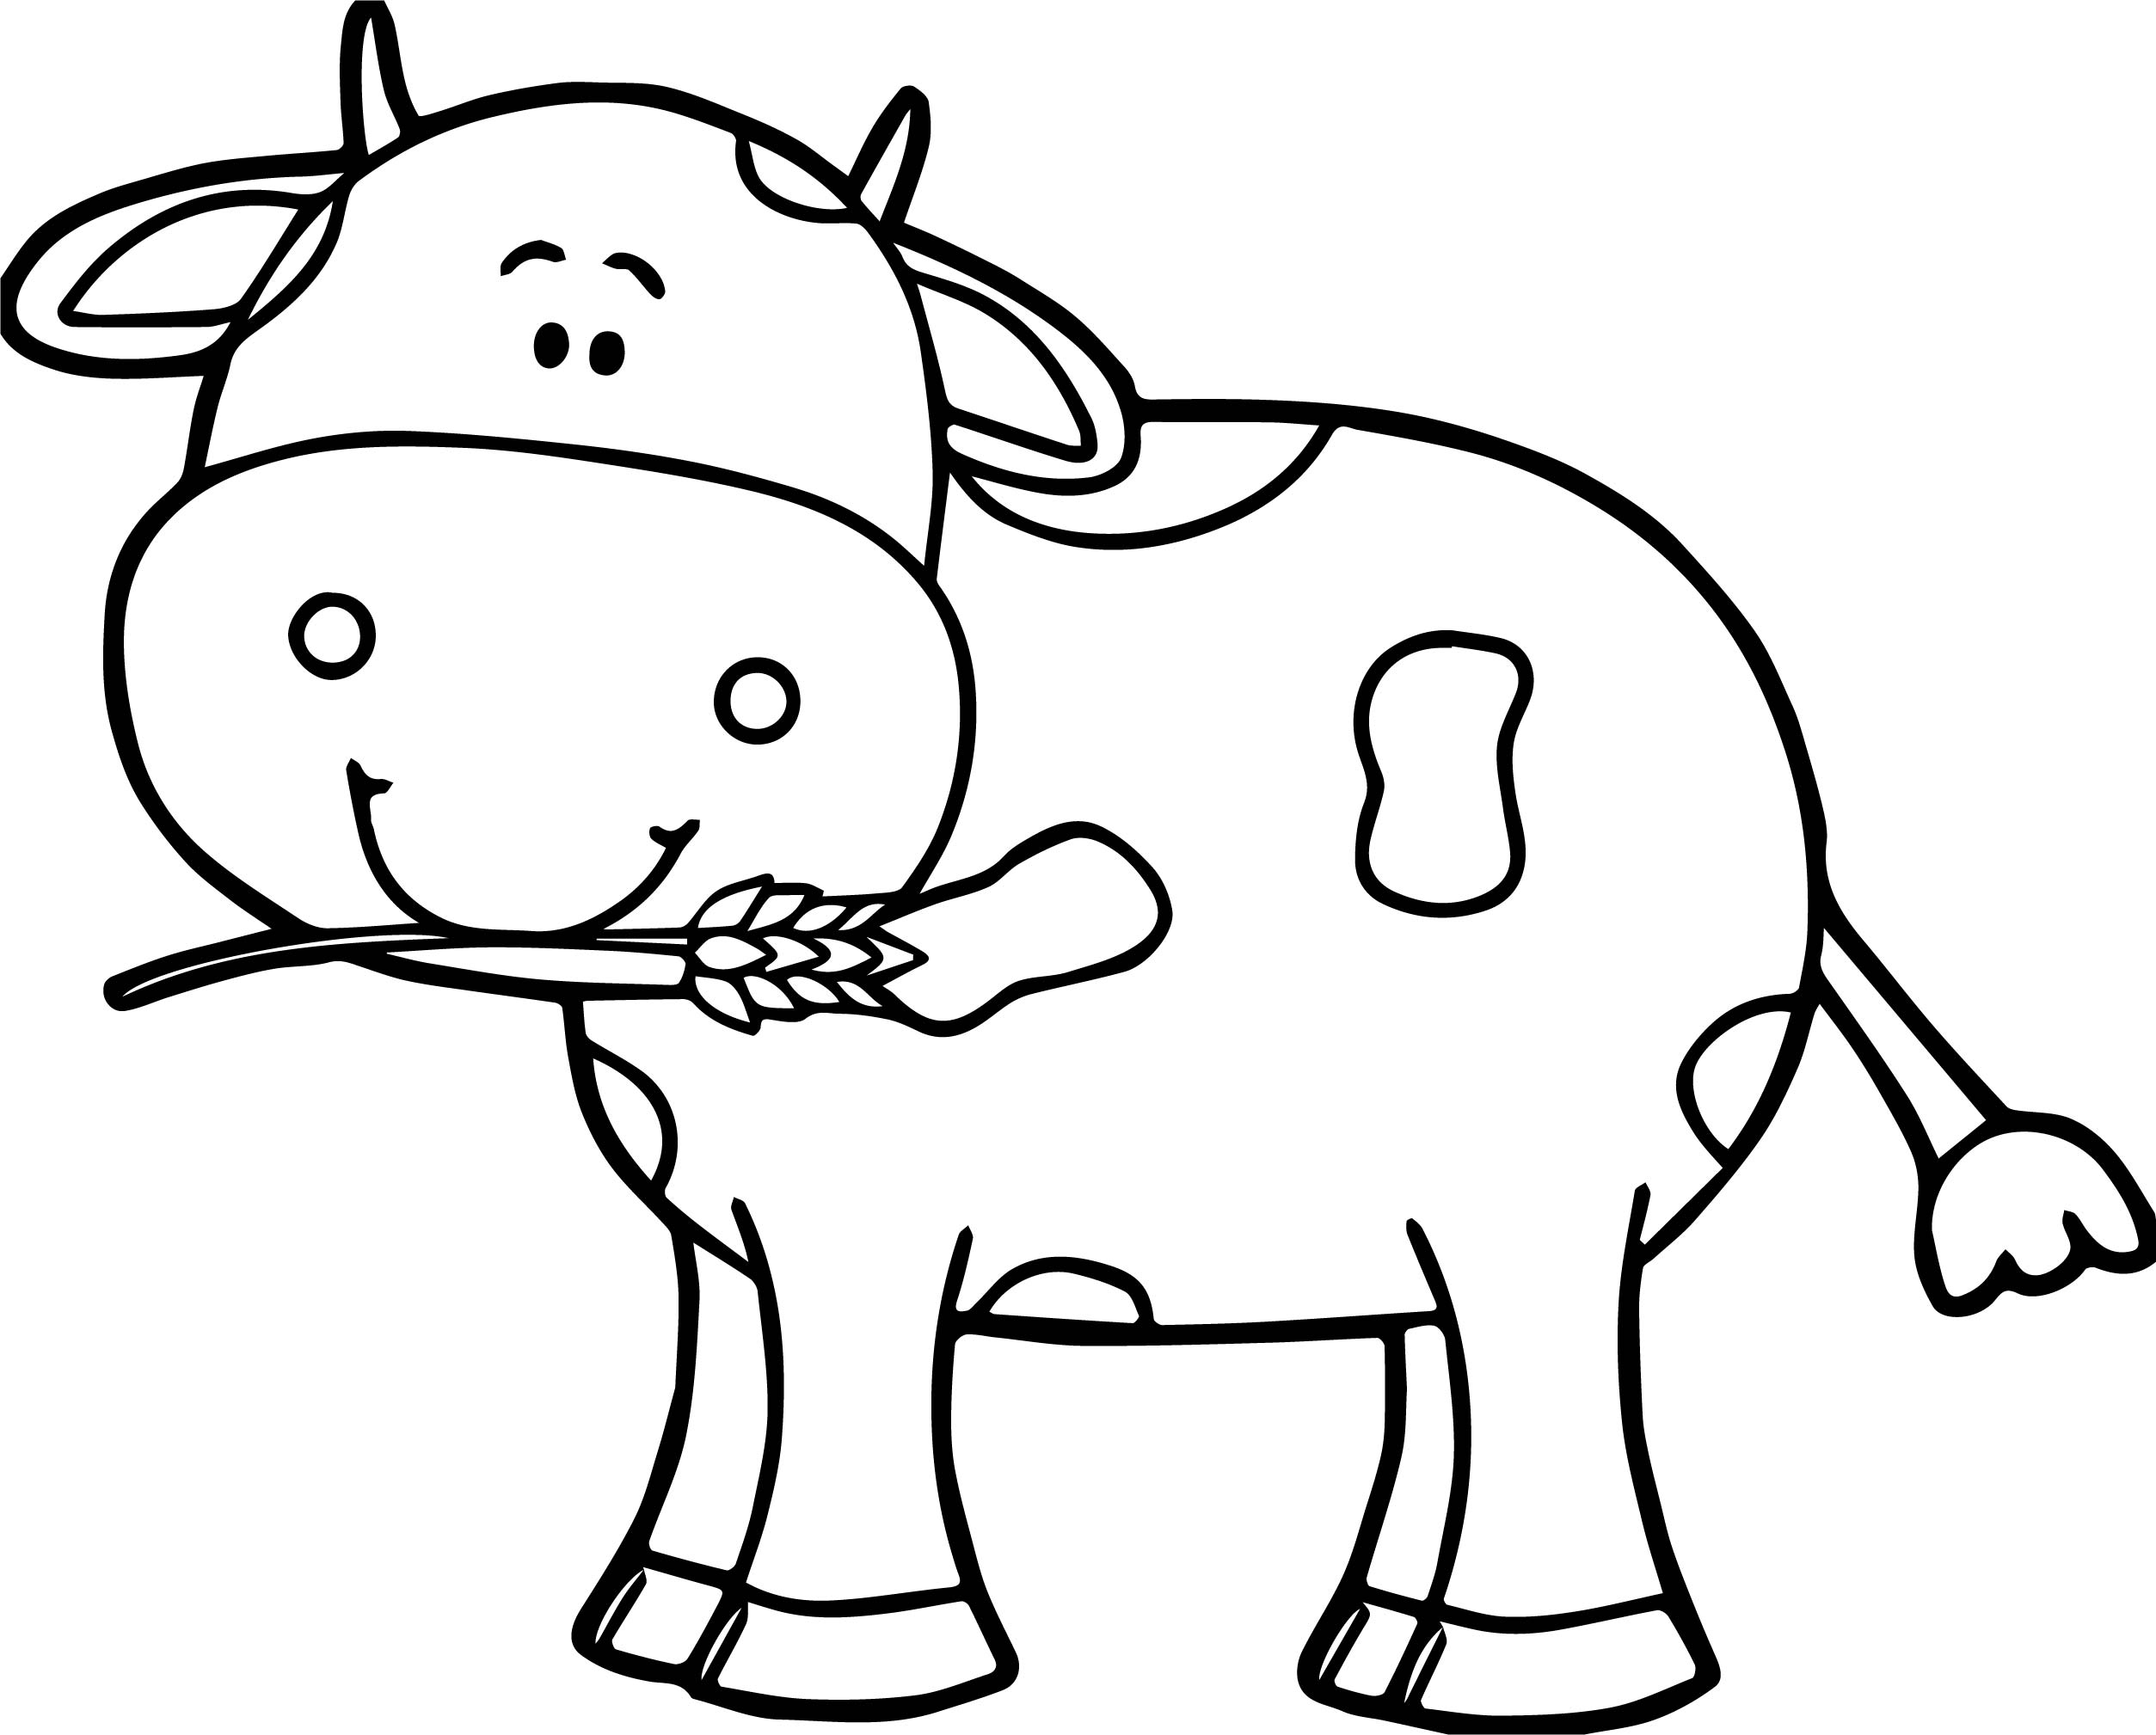 cow coloring images top 15 free printable cow coloring pages online coloring cow images